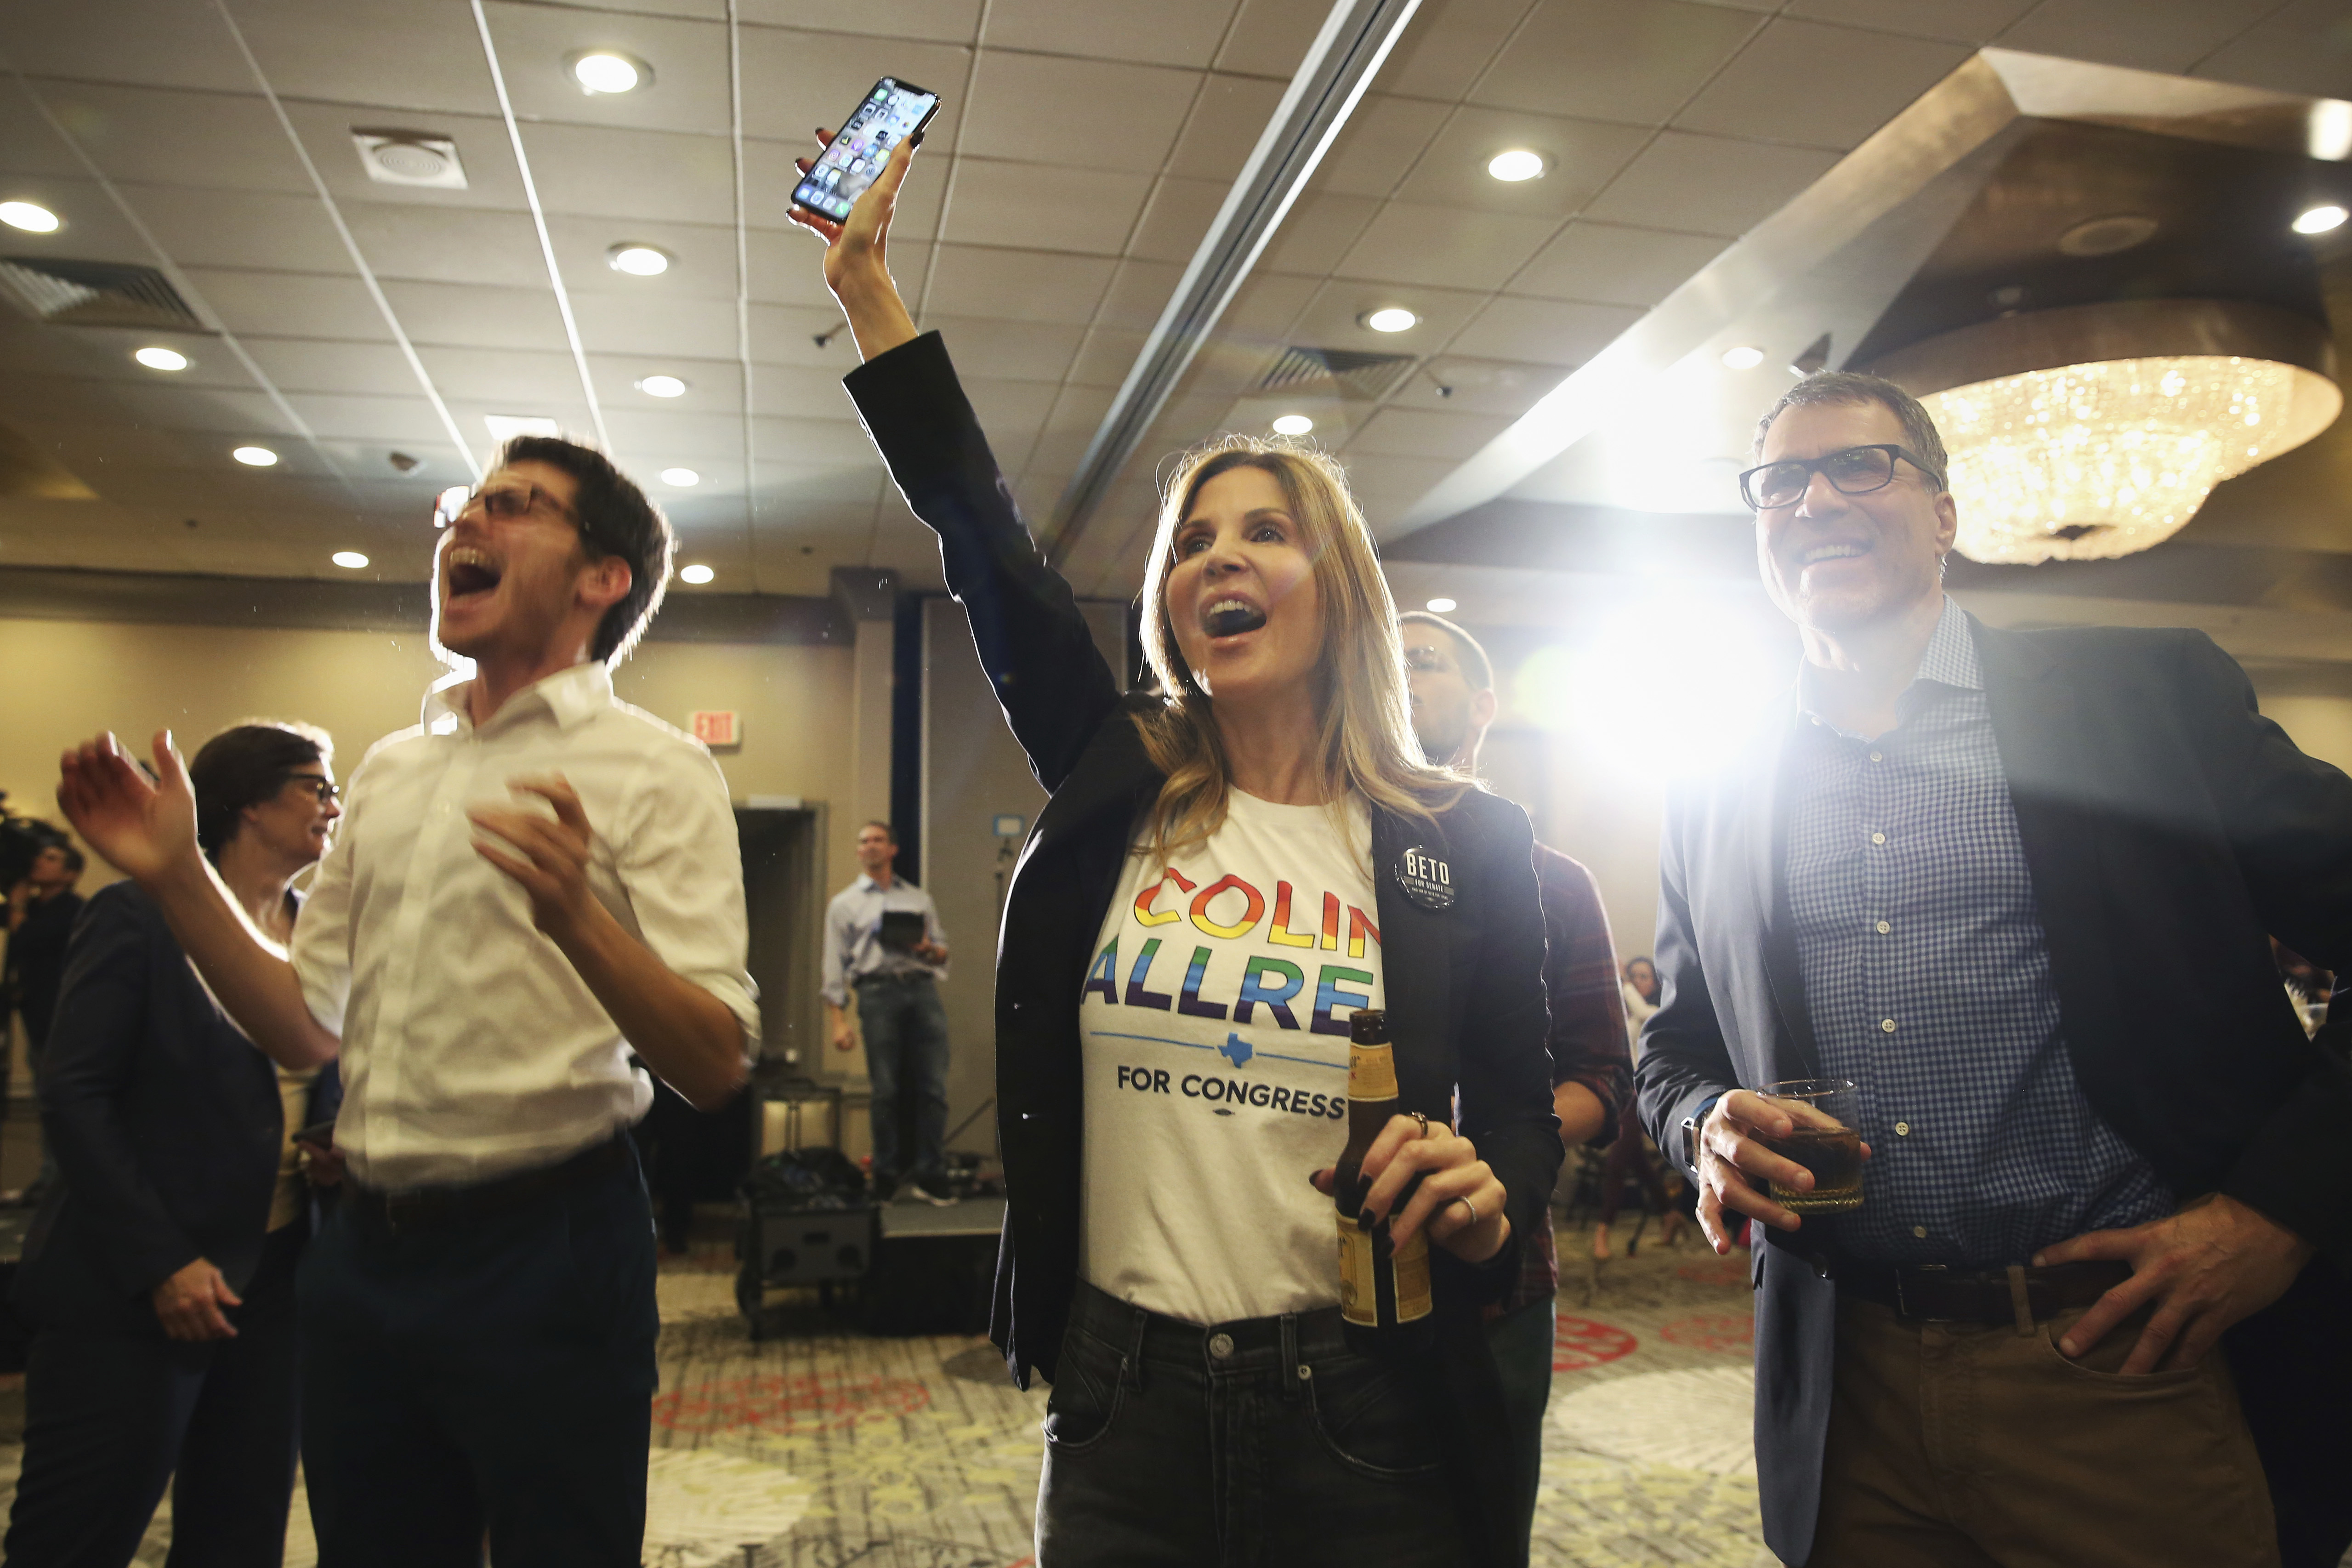 David Rosen, from left, Jennifer Karol and her husband Tom Karol react to an update on the 32nd Texas congressional race during an election night party for Democratic candidate Colin Allred at the Magnolia Hotel Dallas Park Cities in Dallas, Tuesday, Nov. 6, 2018. Allred defeated GOP incumbent Republican Pete Sessions for the Texas 32nd U.S. congressional house district. (AP Photo/Andy Jacobsohn)